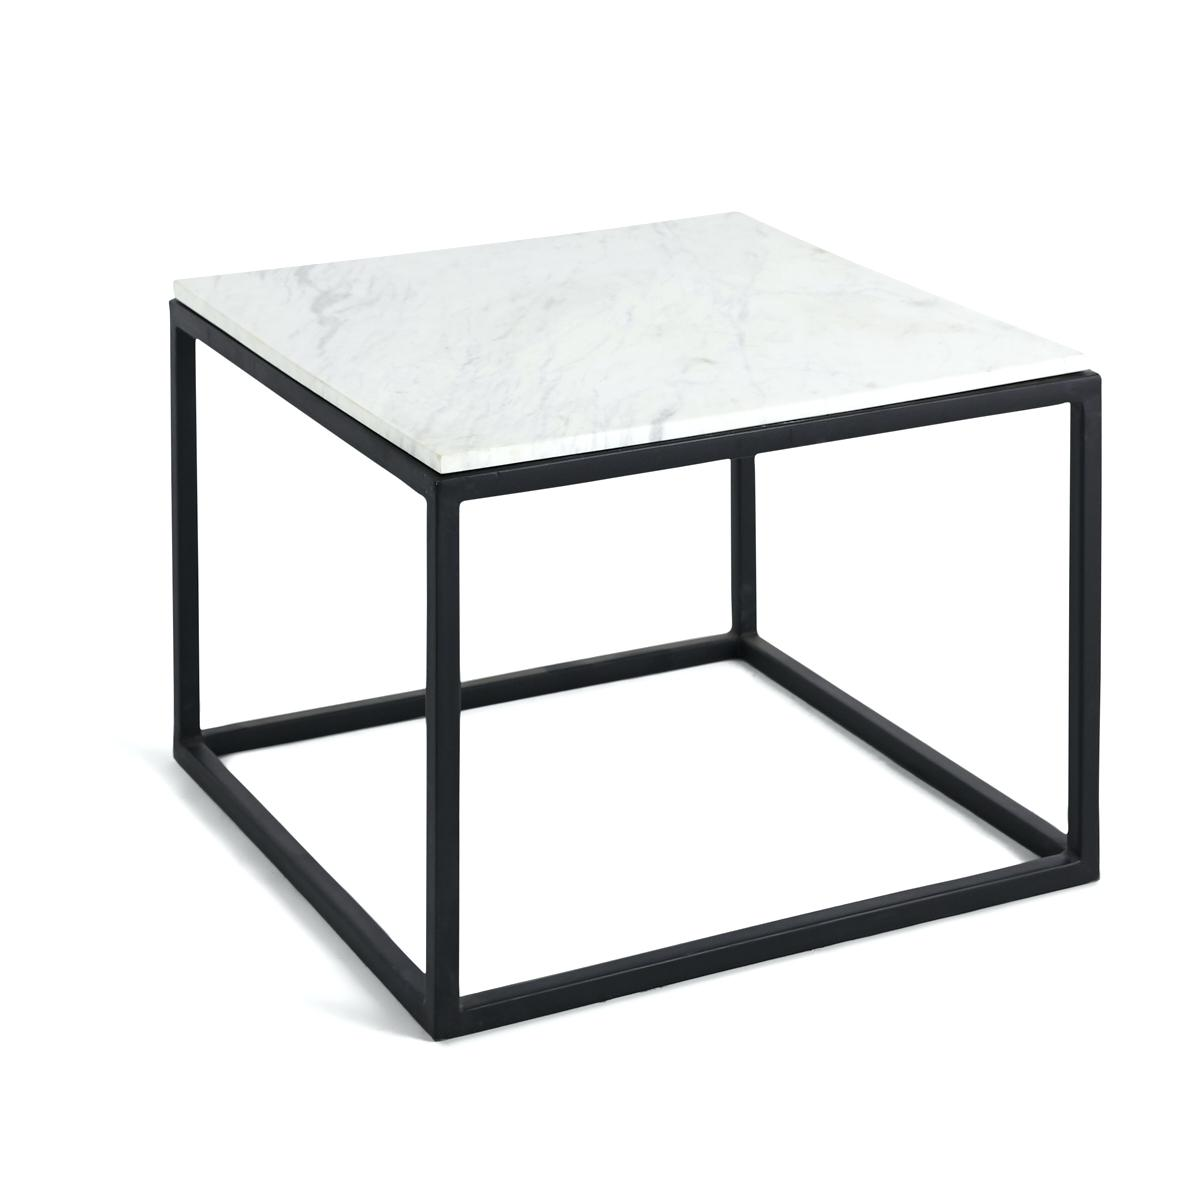 metal side table outdoor vintage coffee crosley wisteria marble retro orange accent black sofa end tables with drawers grey bedside lights round dining room sets wine rack below